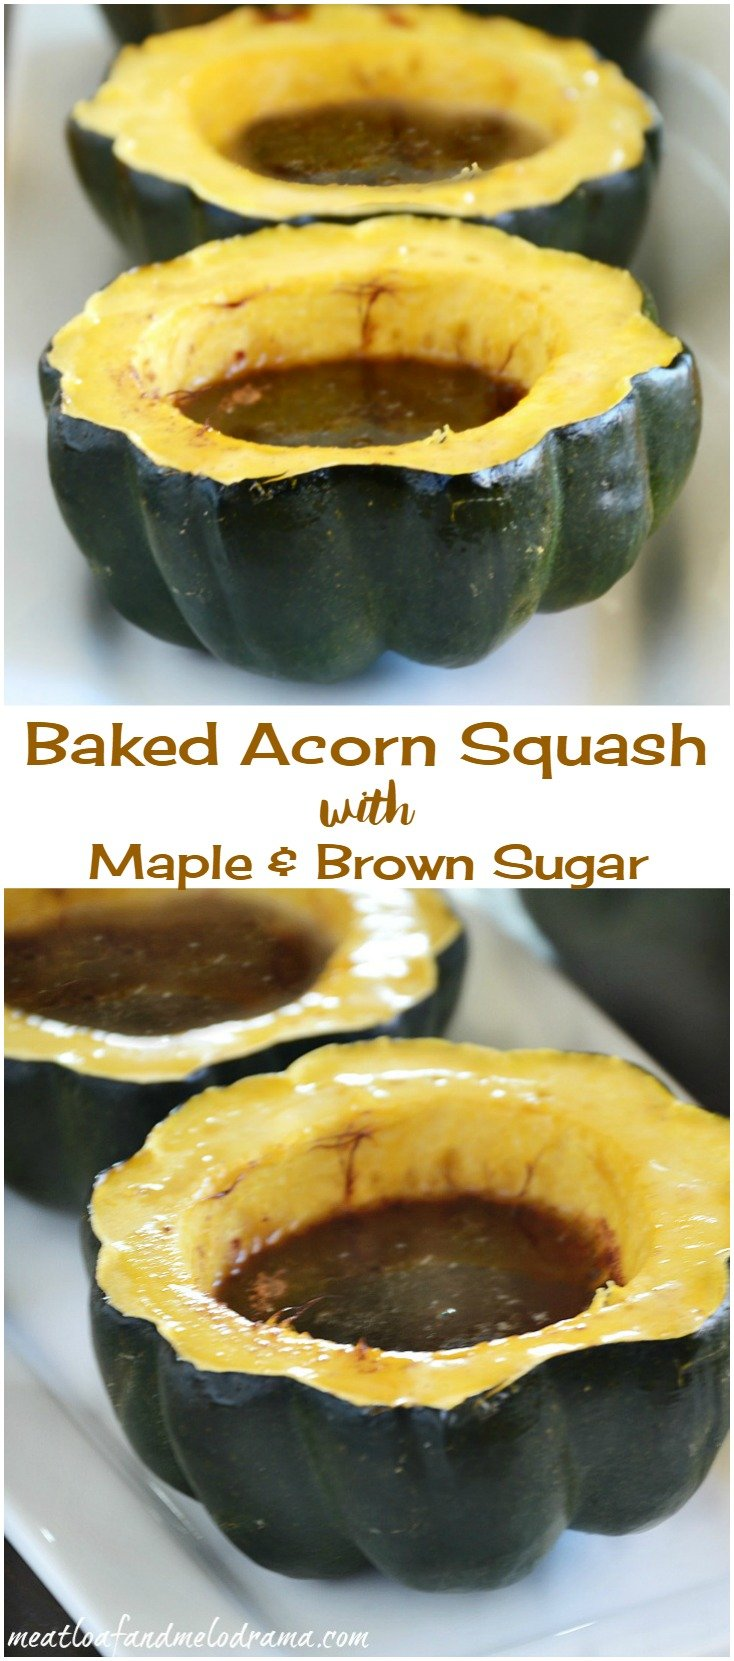 easy Baked Acorn Squash with Maple and Brown Sugar